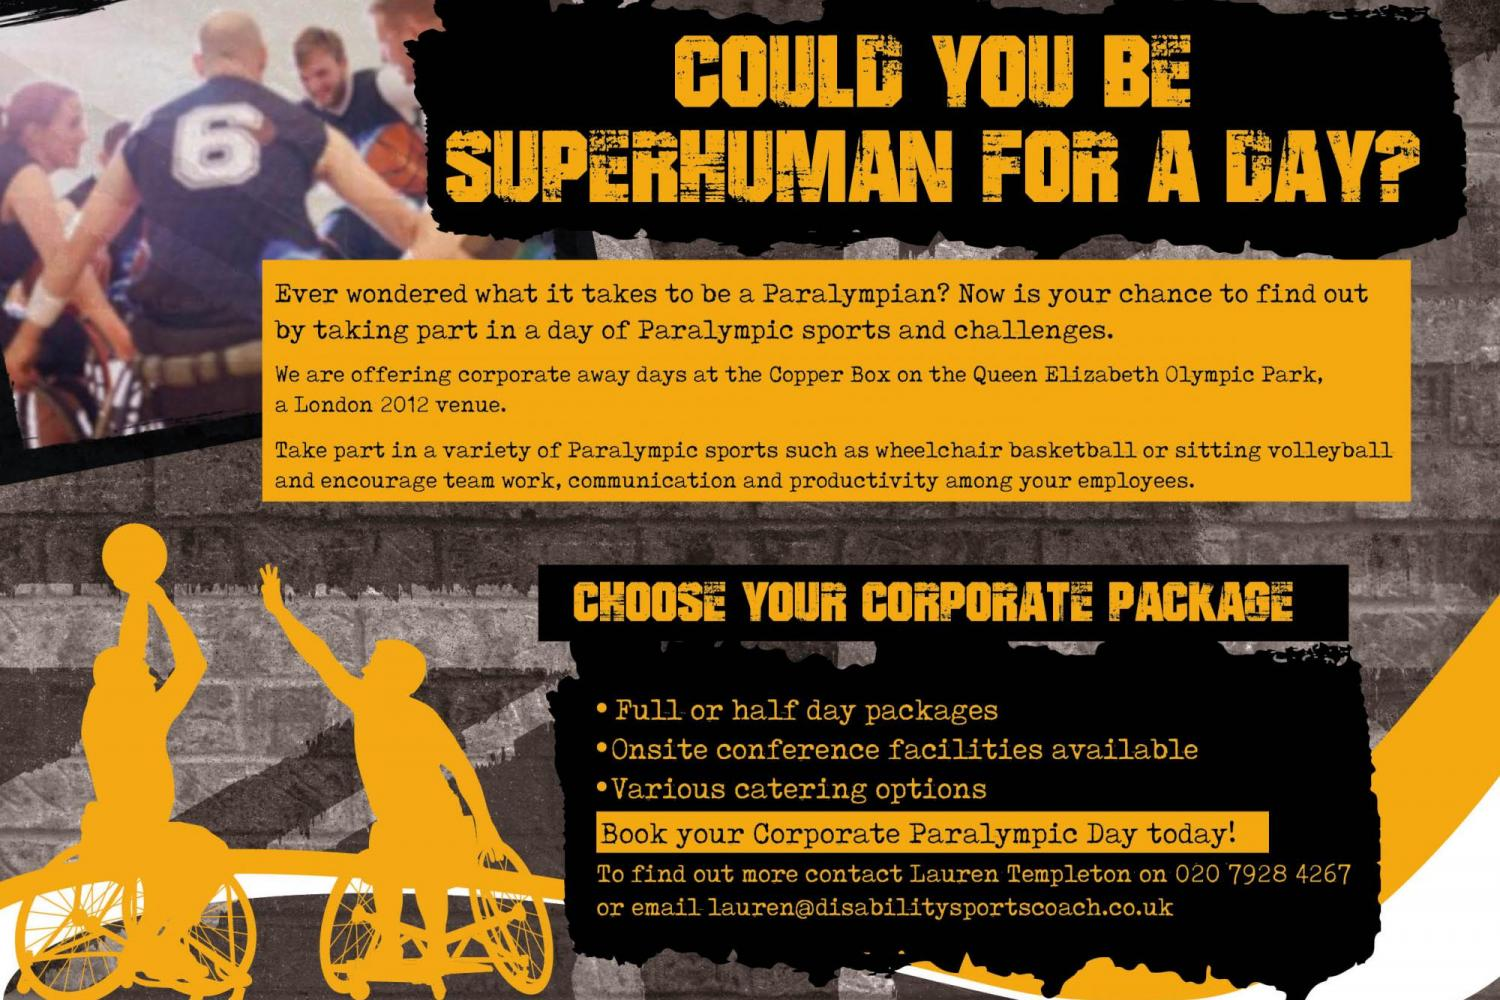 DSC Corporate Away Day - Can you be Superhuman for a day?